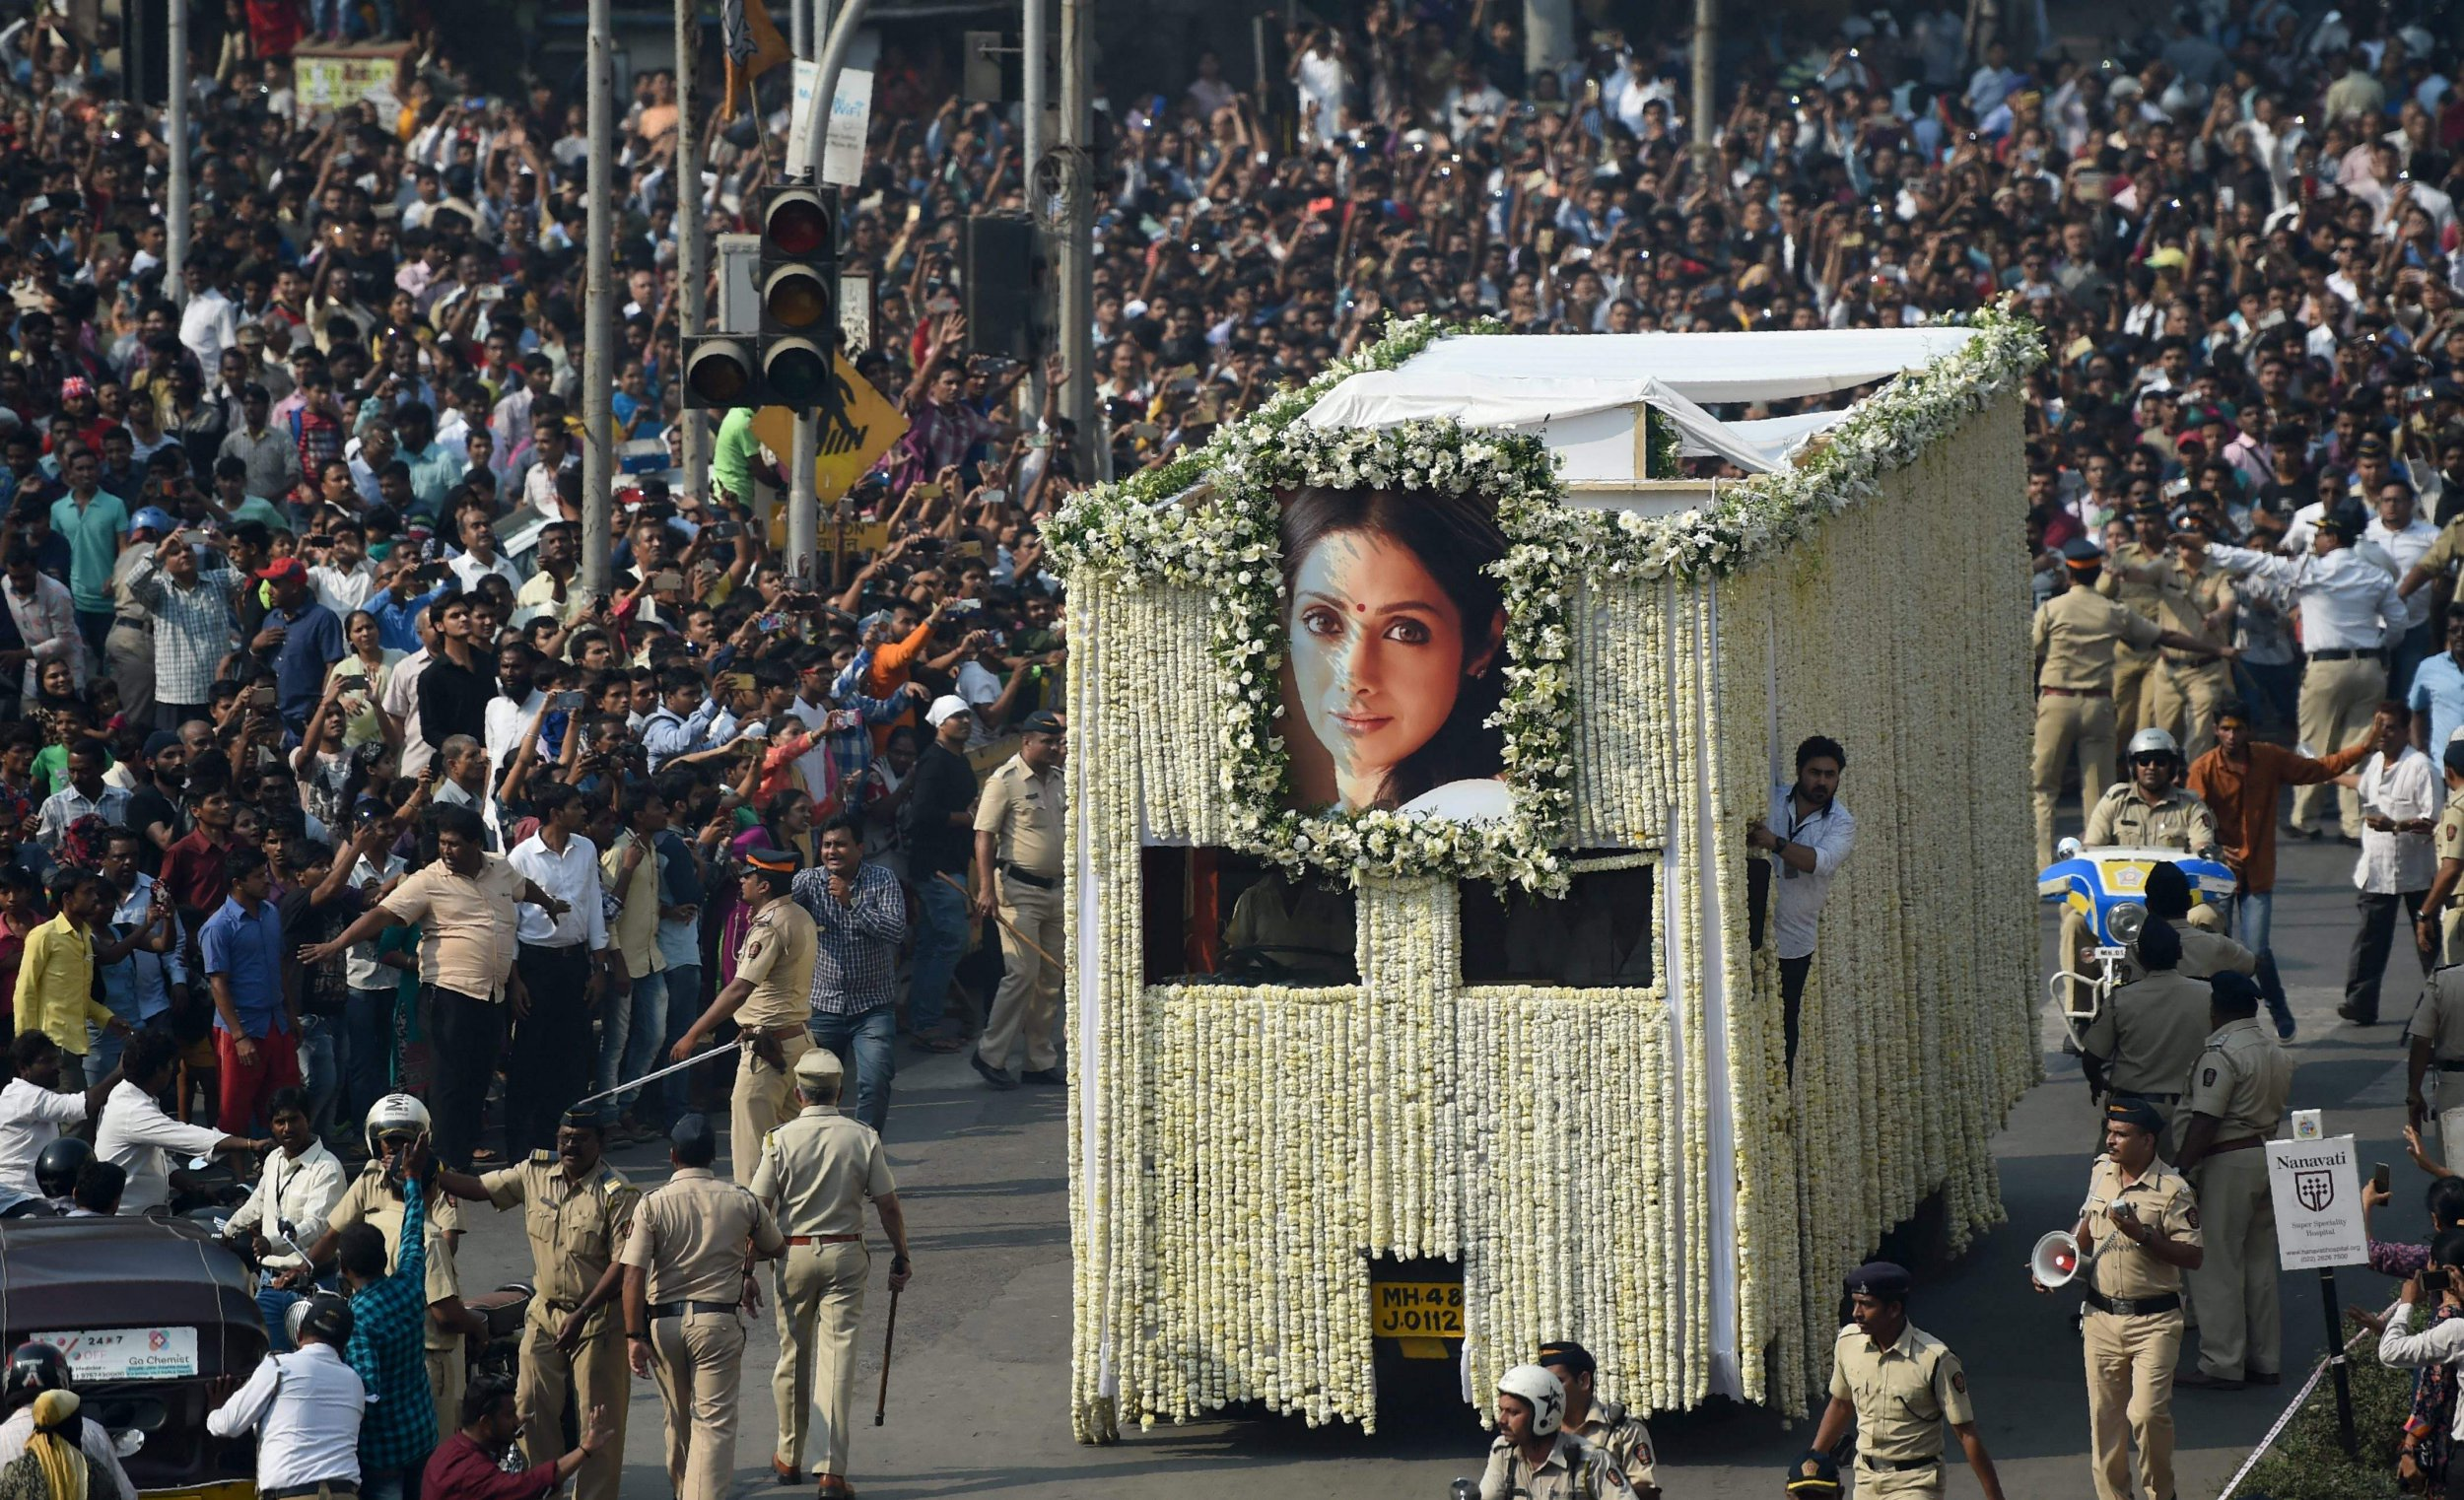 Indian fans watch as the funeral cortege of the late Bollywood actress Sridevi Kapoor passes through Mumbai on February 28, 2018. Thousands of heartbroken fans lined the streets of Mumbai February 28 as India said farewell to Bollywood legend Sridevi Kapoor following her shock death from accidental drowning in a Dubai hotel bathtub aged just 54. / AFP PHOTO / PUNIT PARANJPEPUNIT PARANJPE/AFP/Getty Images